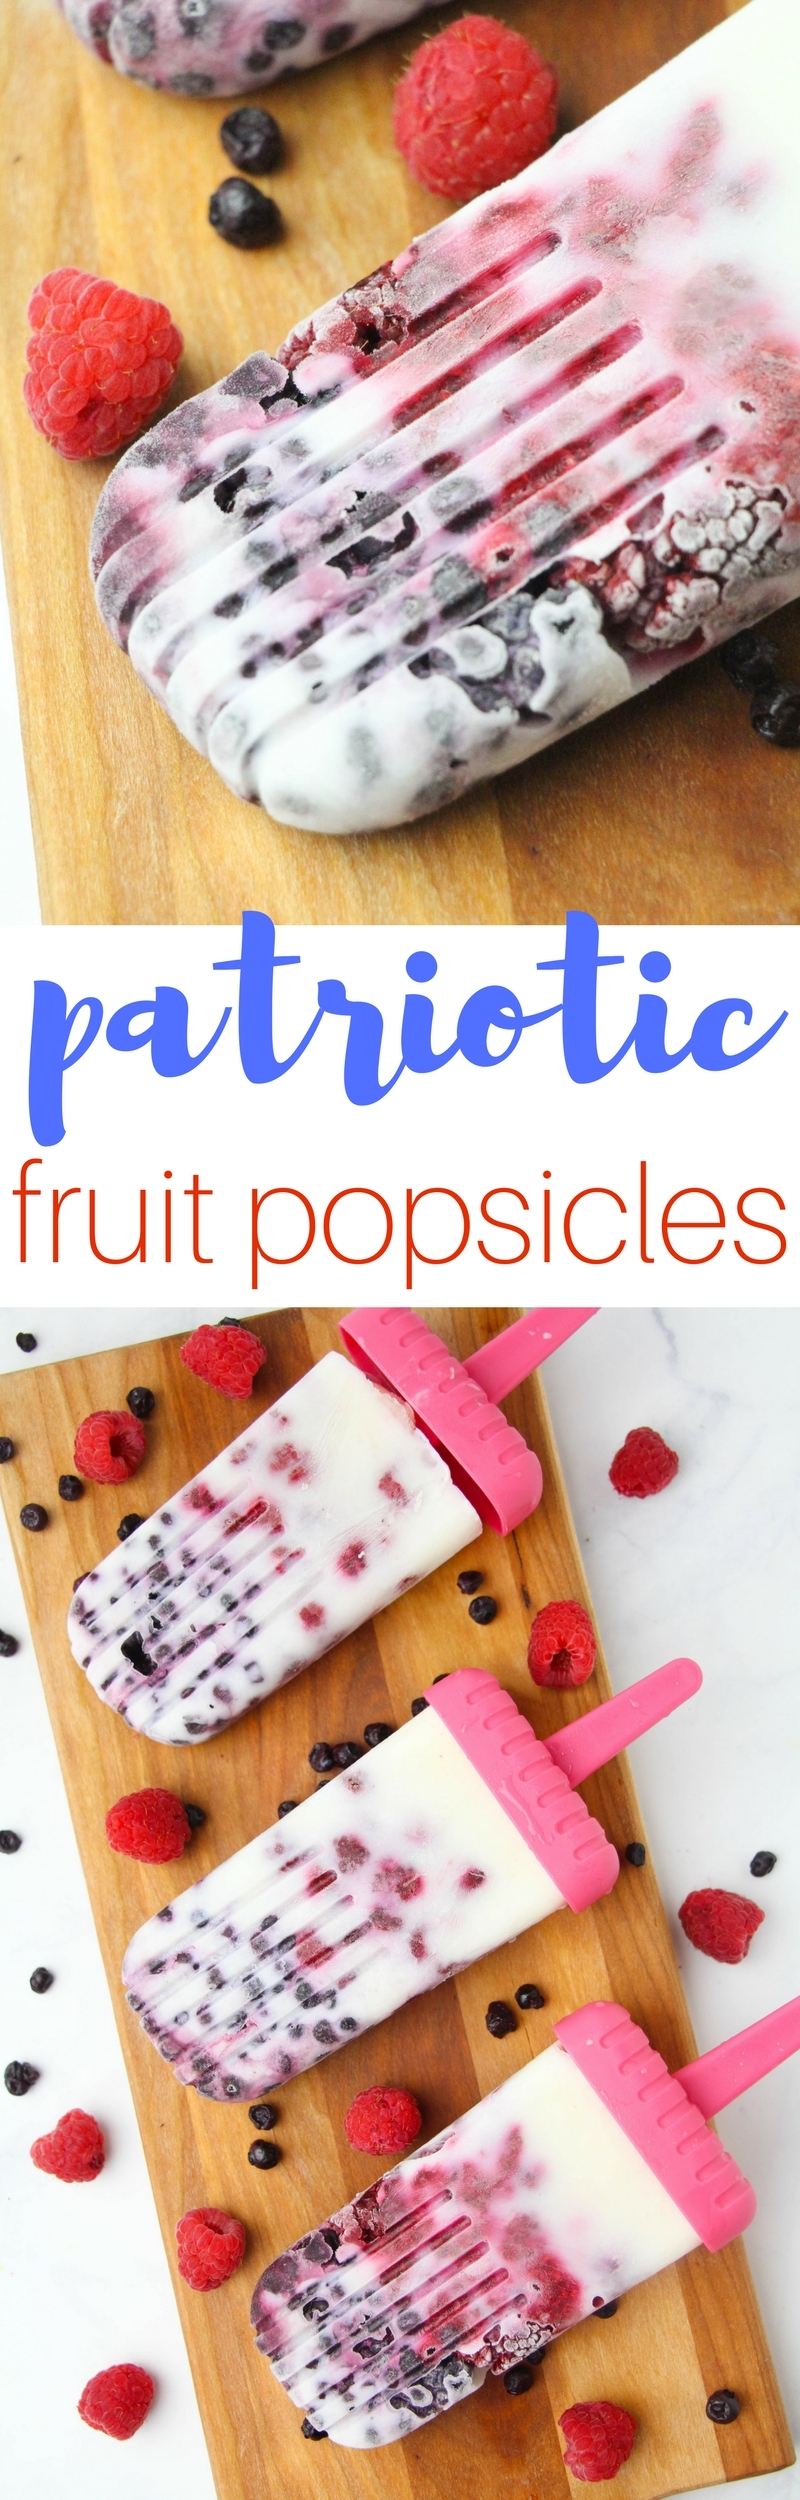 How To Make Patriotic Fruit Popsicles by popular Utah blogger Sandy A La Mode